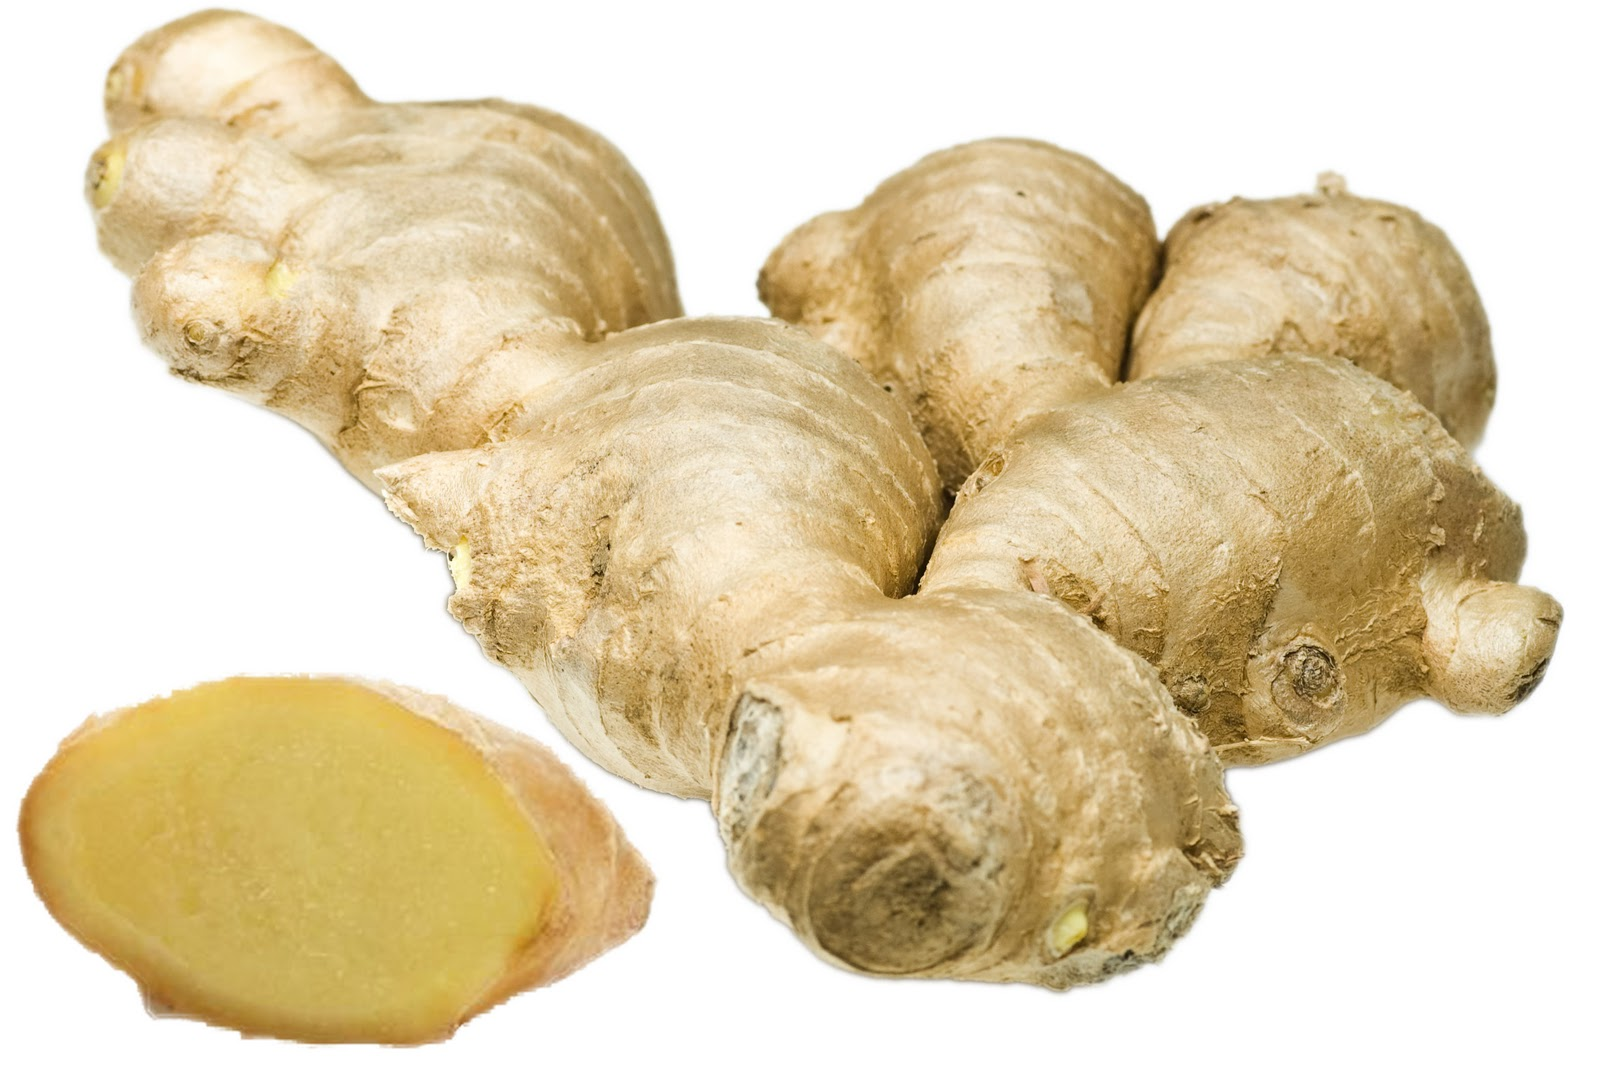 Ginger: Health benefits and dietary tips